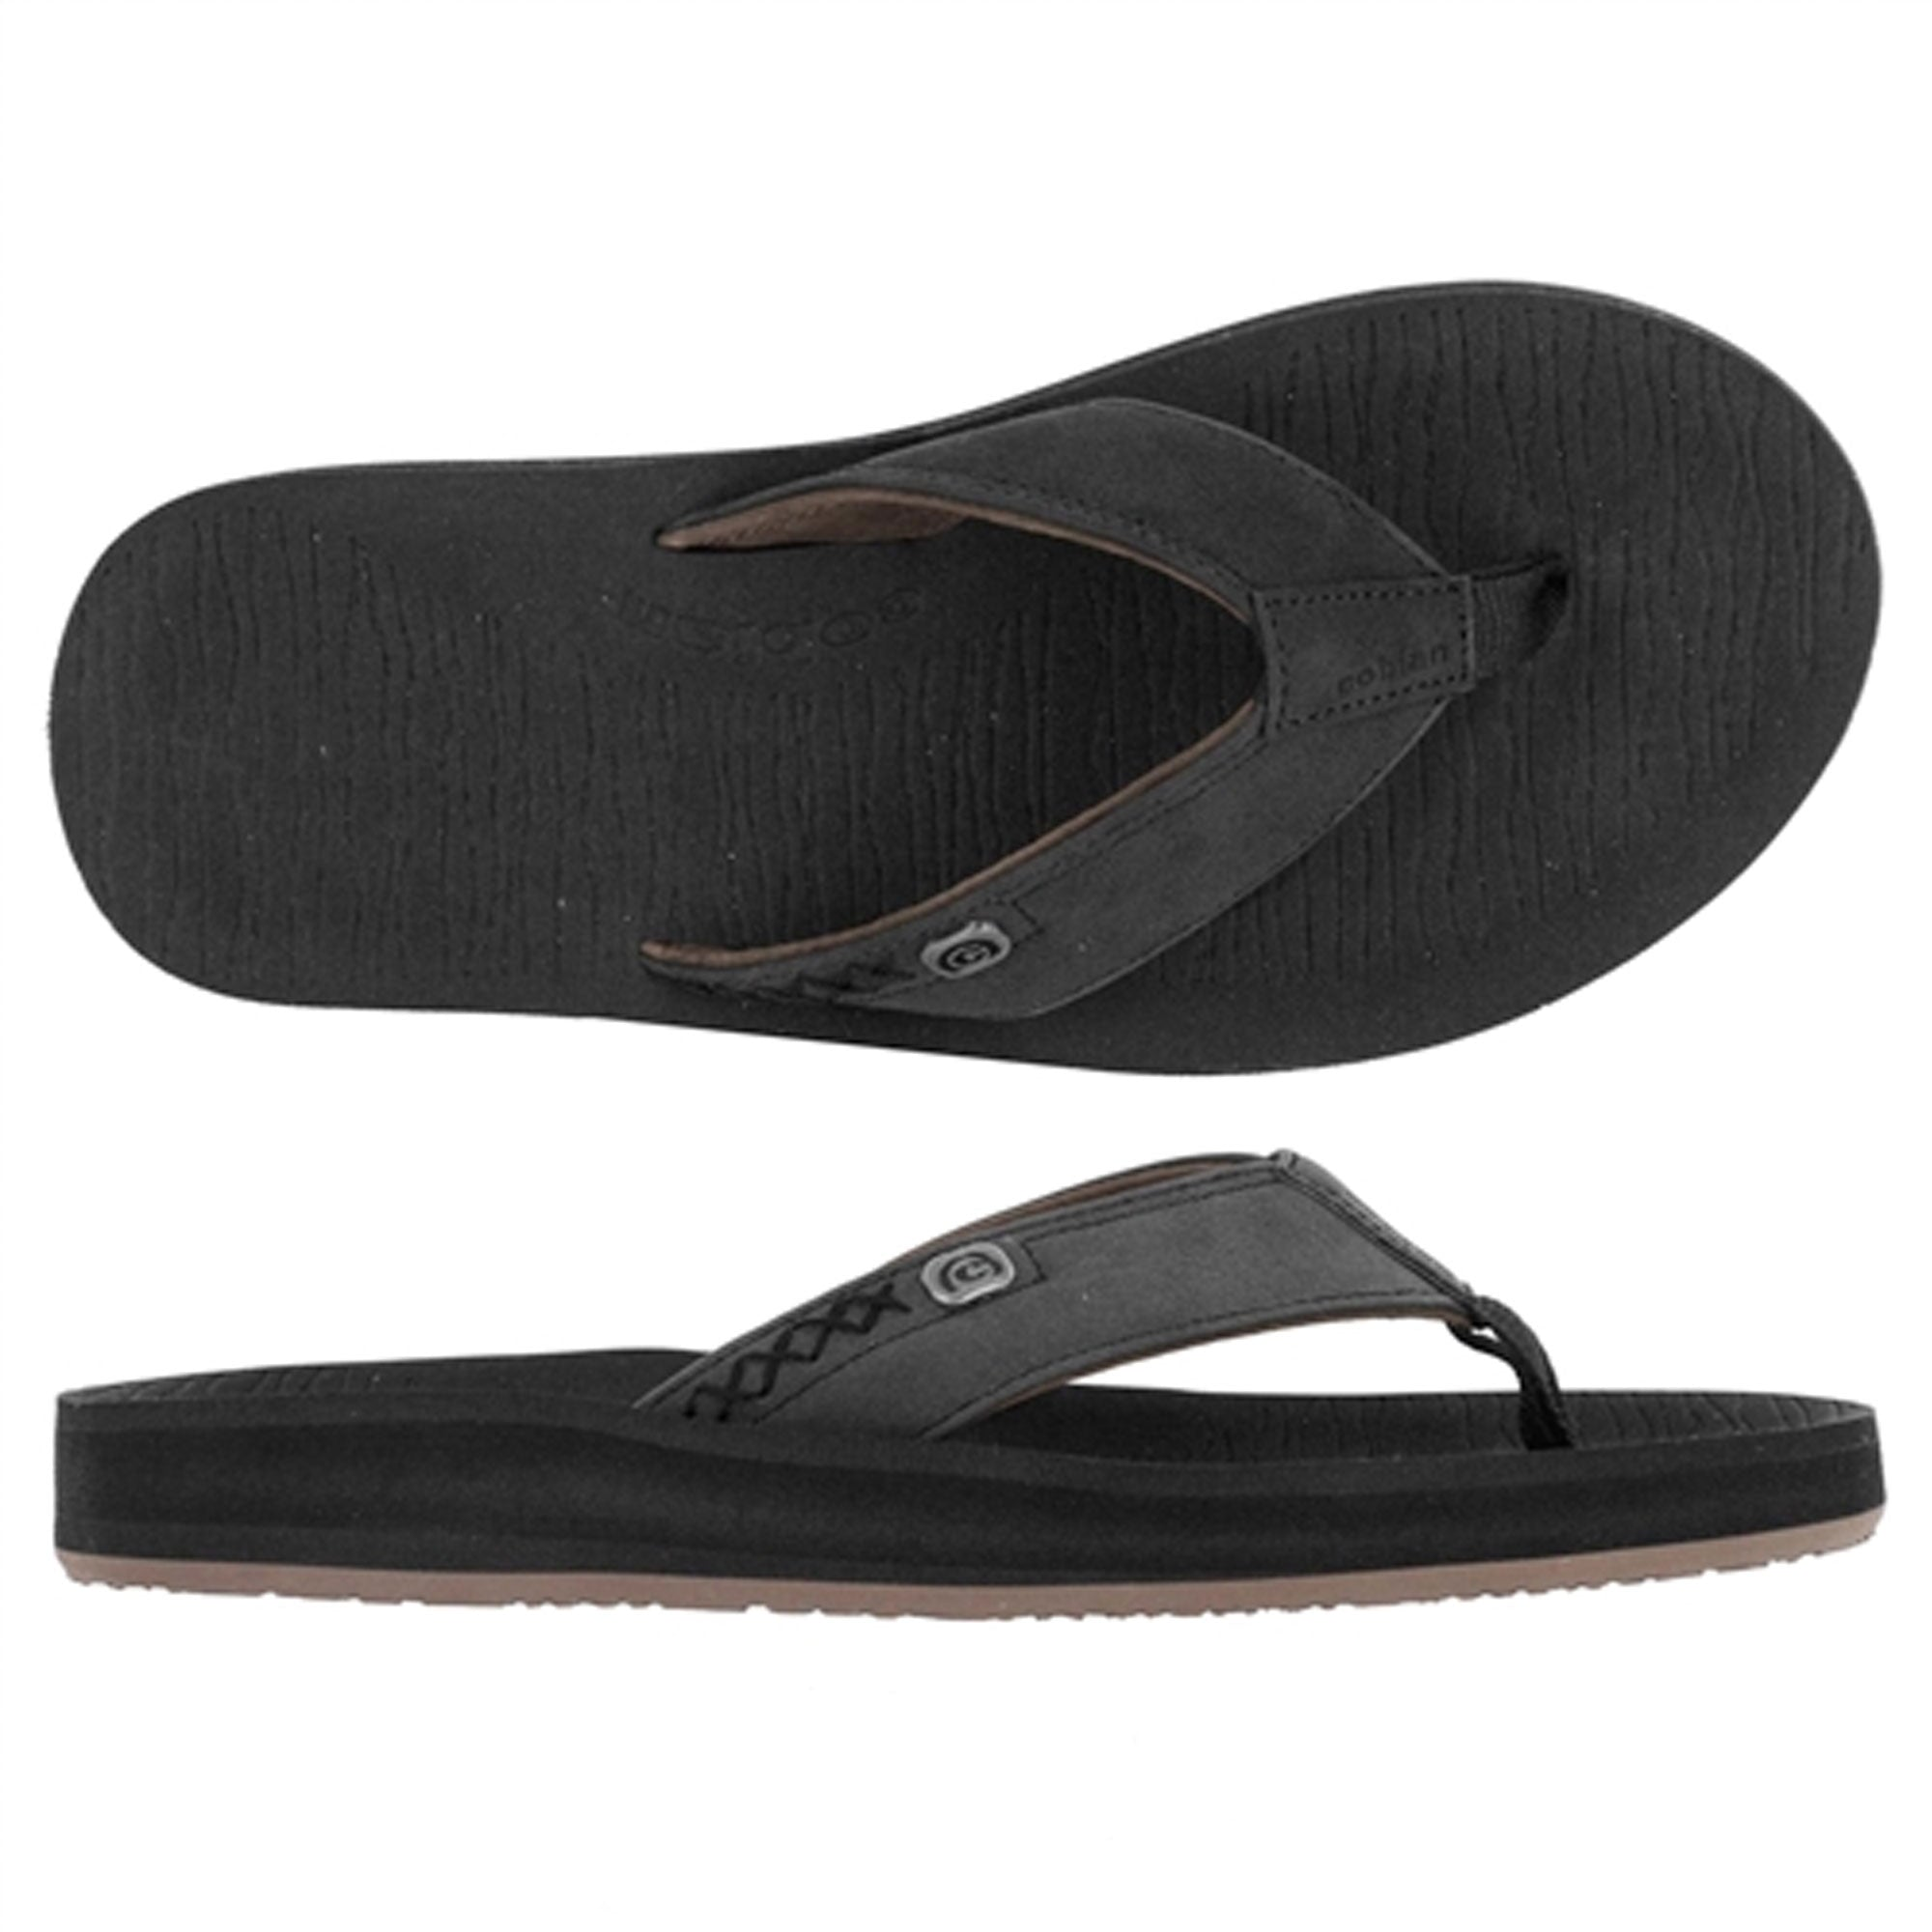 Cobian Austin Men's Sandals